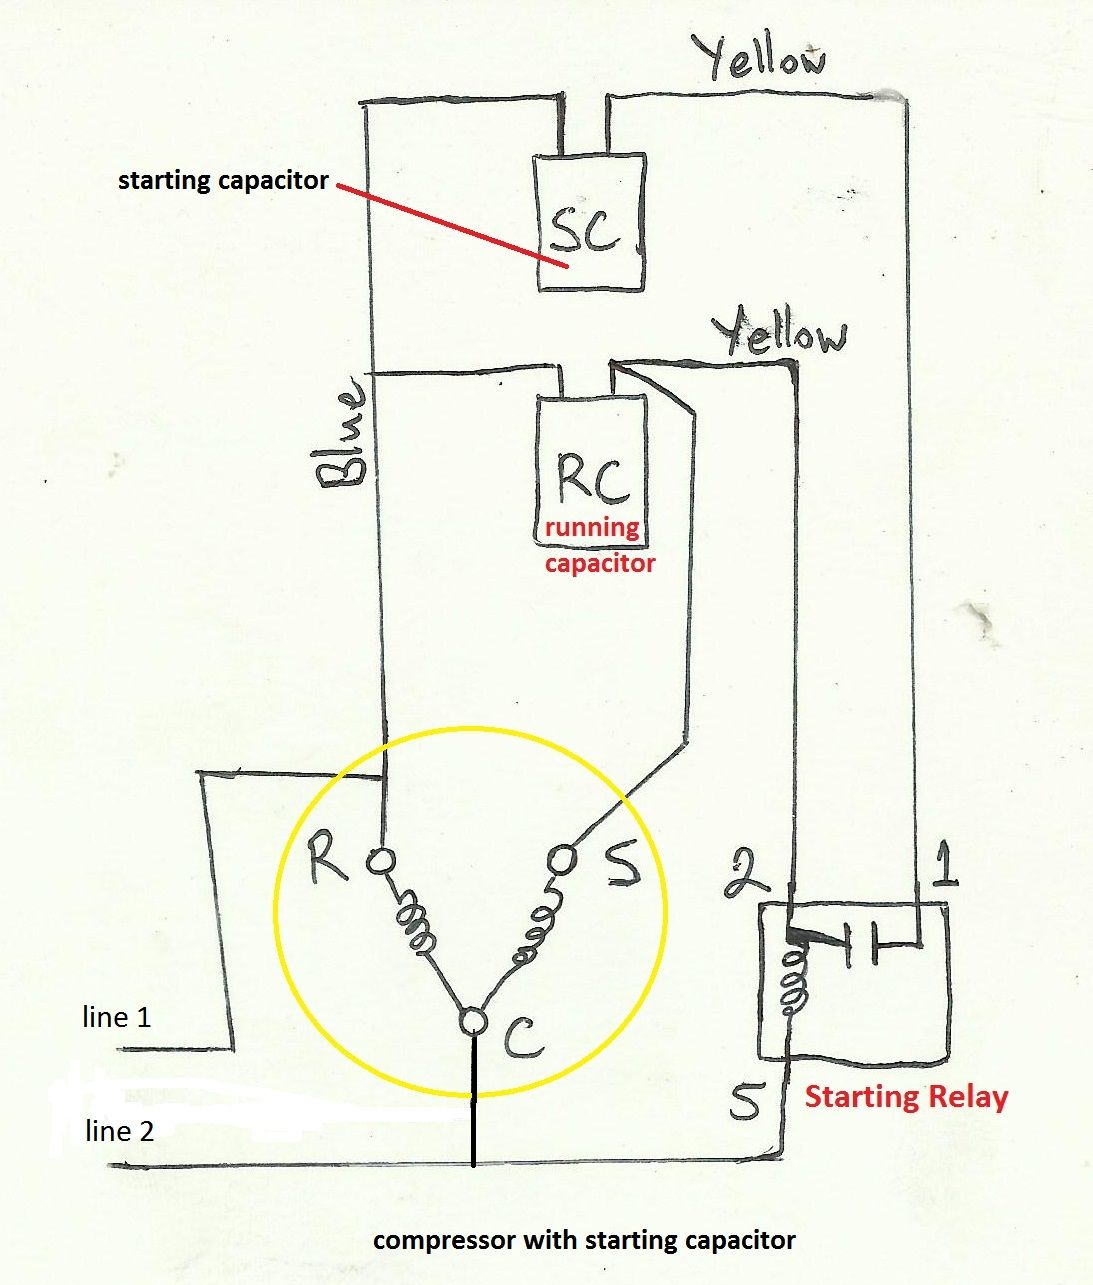 50528d800da7d87408a55b396c2aa5e6 air compressor capacitor wiring diagram before you call a ac Coleman Air Conditioner at virtualis.co